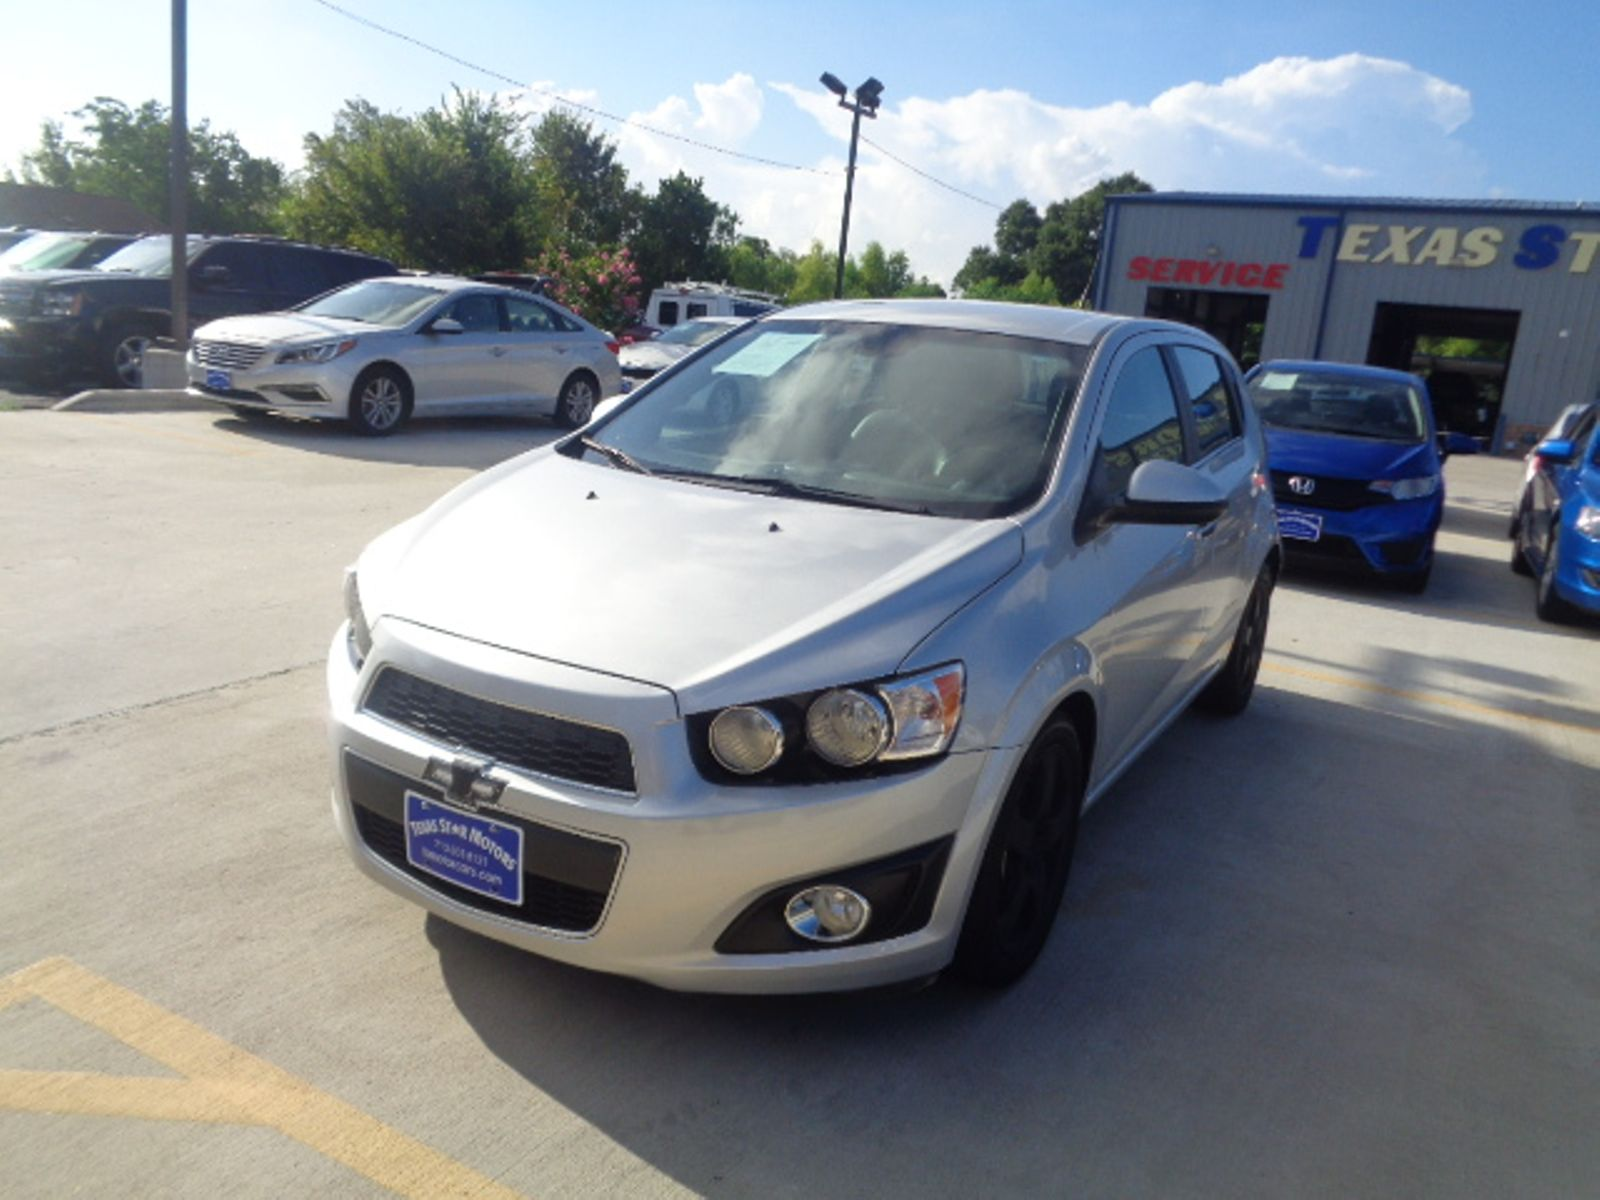 Chevrolet Sonic Owners Manual: Daytime Running Lamps (DRL)